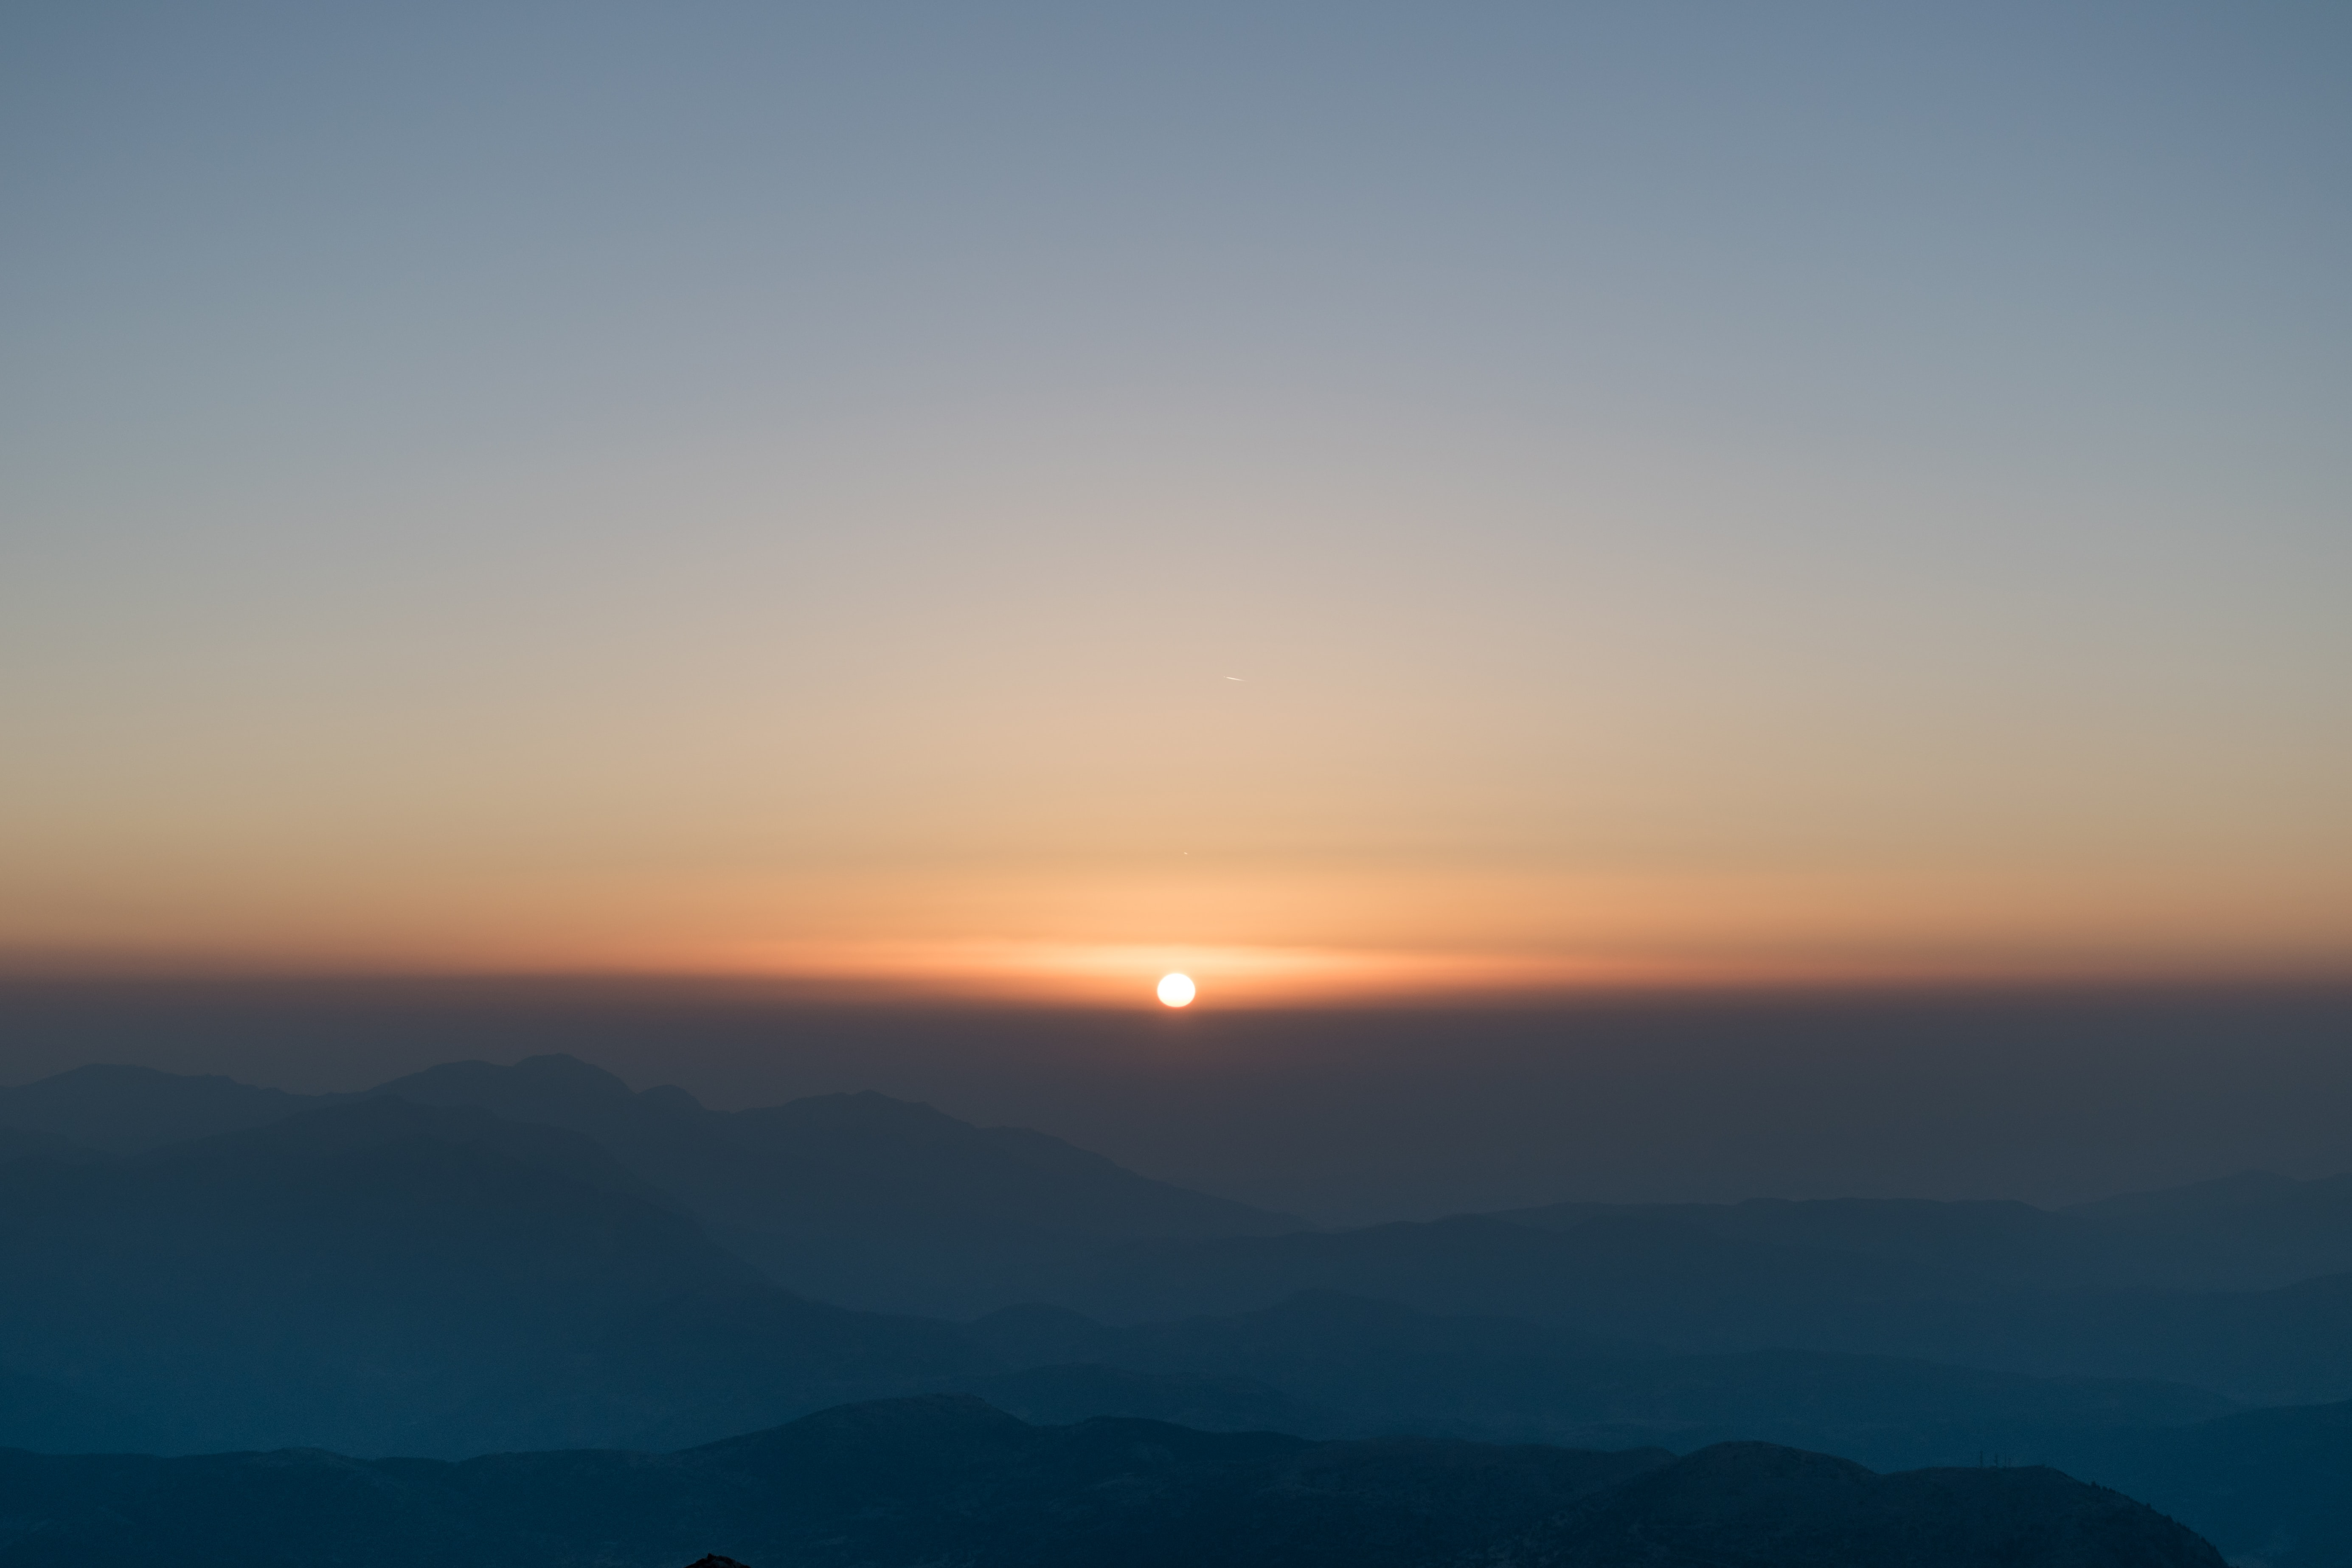 sunrise in front of mountain